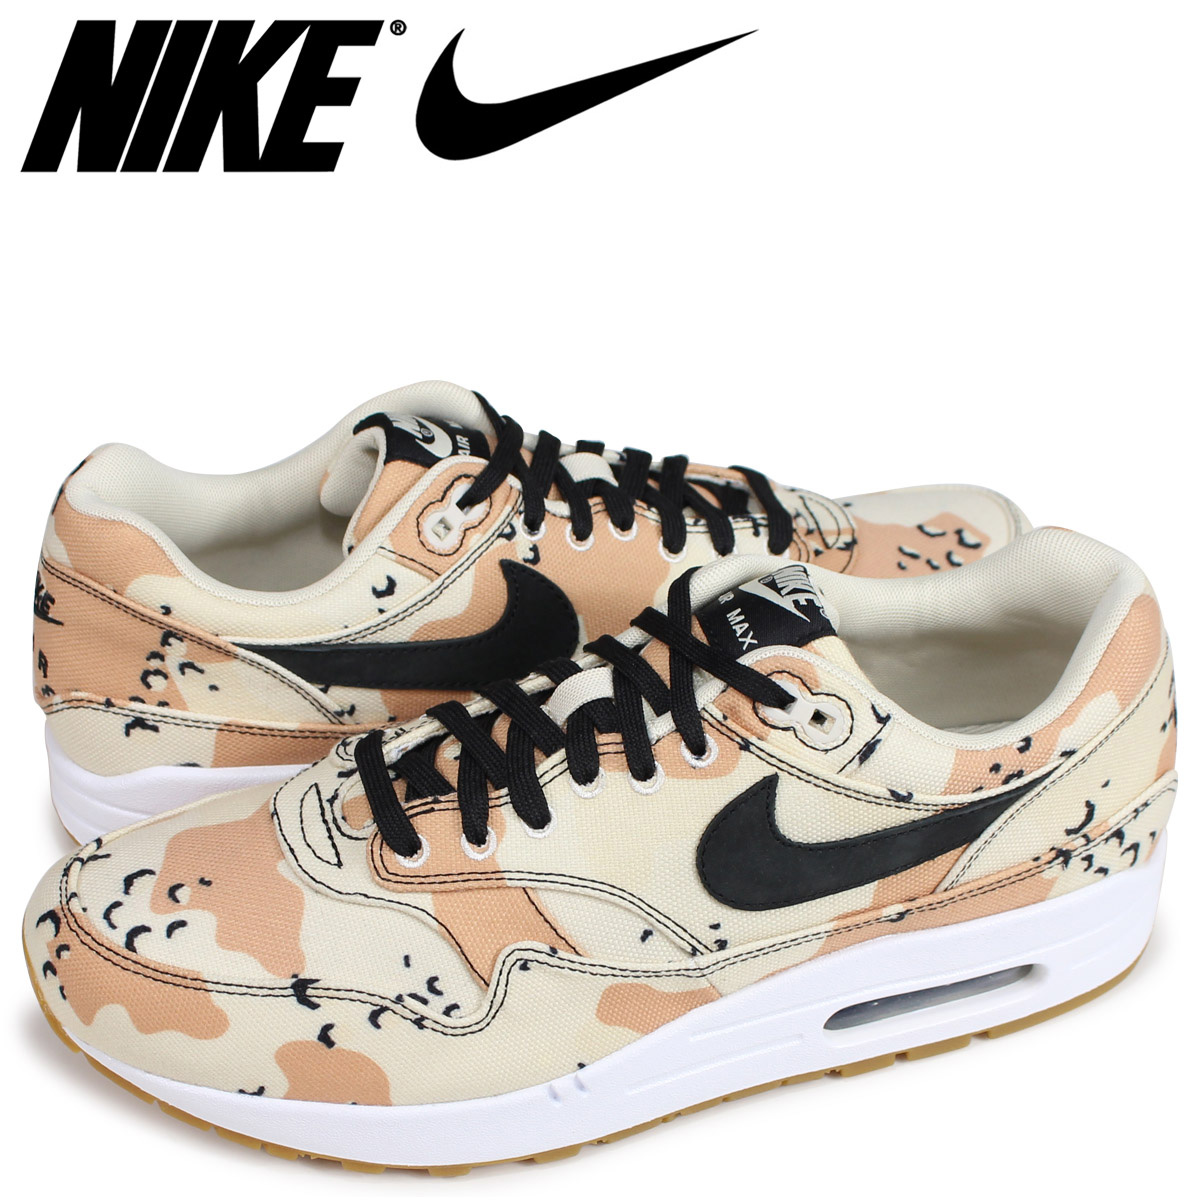 d20b07528c Nike NIKE Air Max 1 sneakers men AIR MAX 1 PREMIUM BEACH CAMO 875,844-204  ...